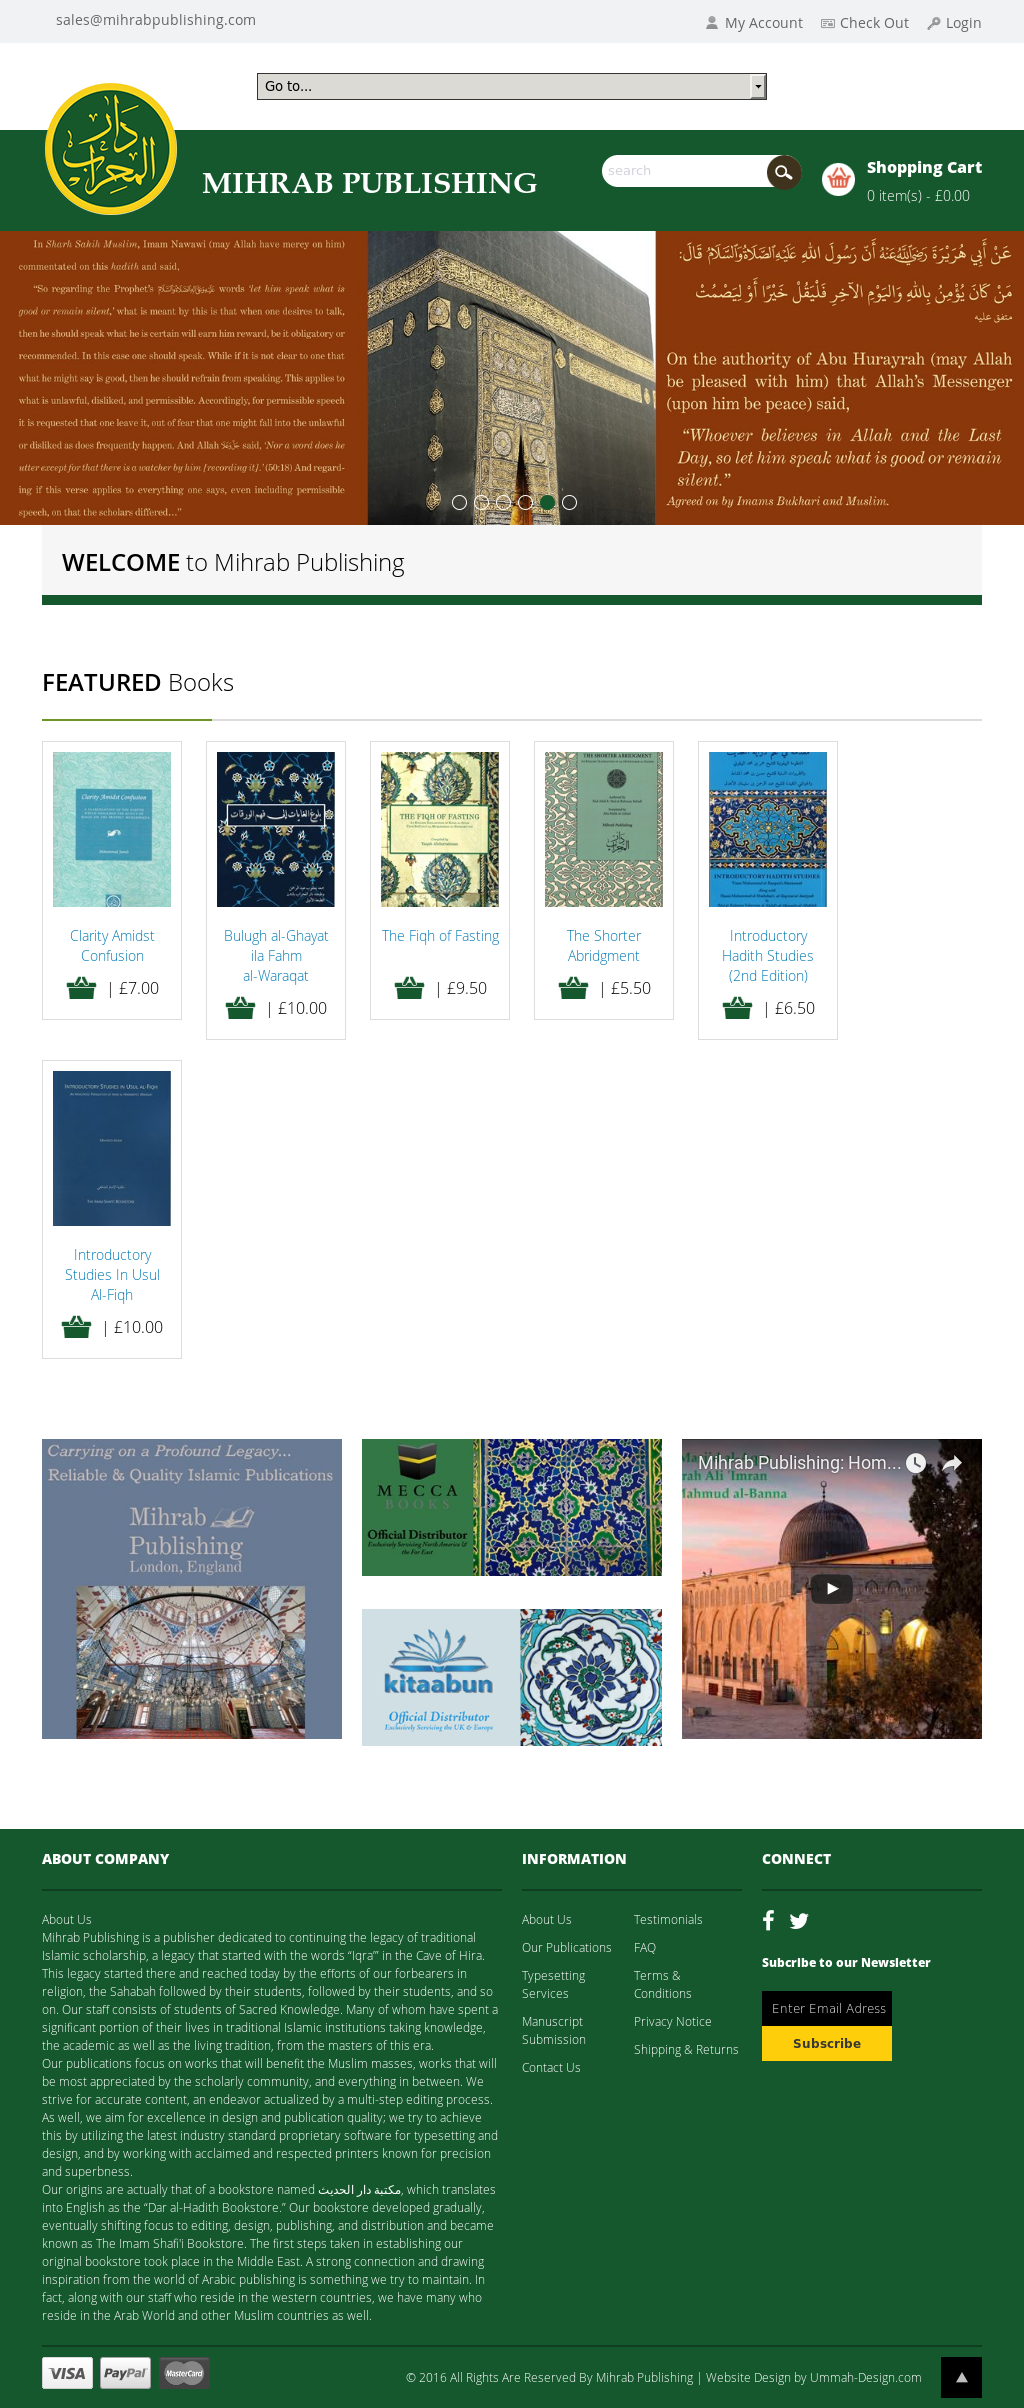 Mihrab Publishing Competitors, Revenue and Employees - Owler